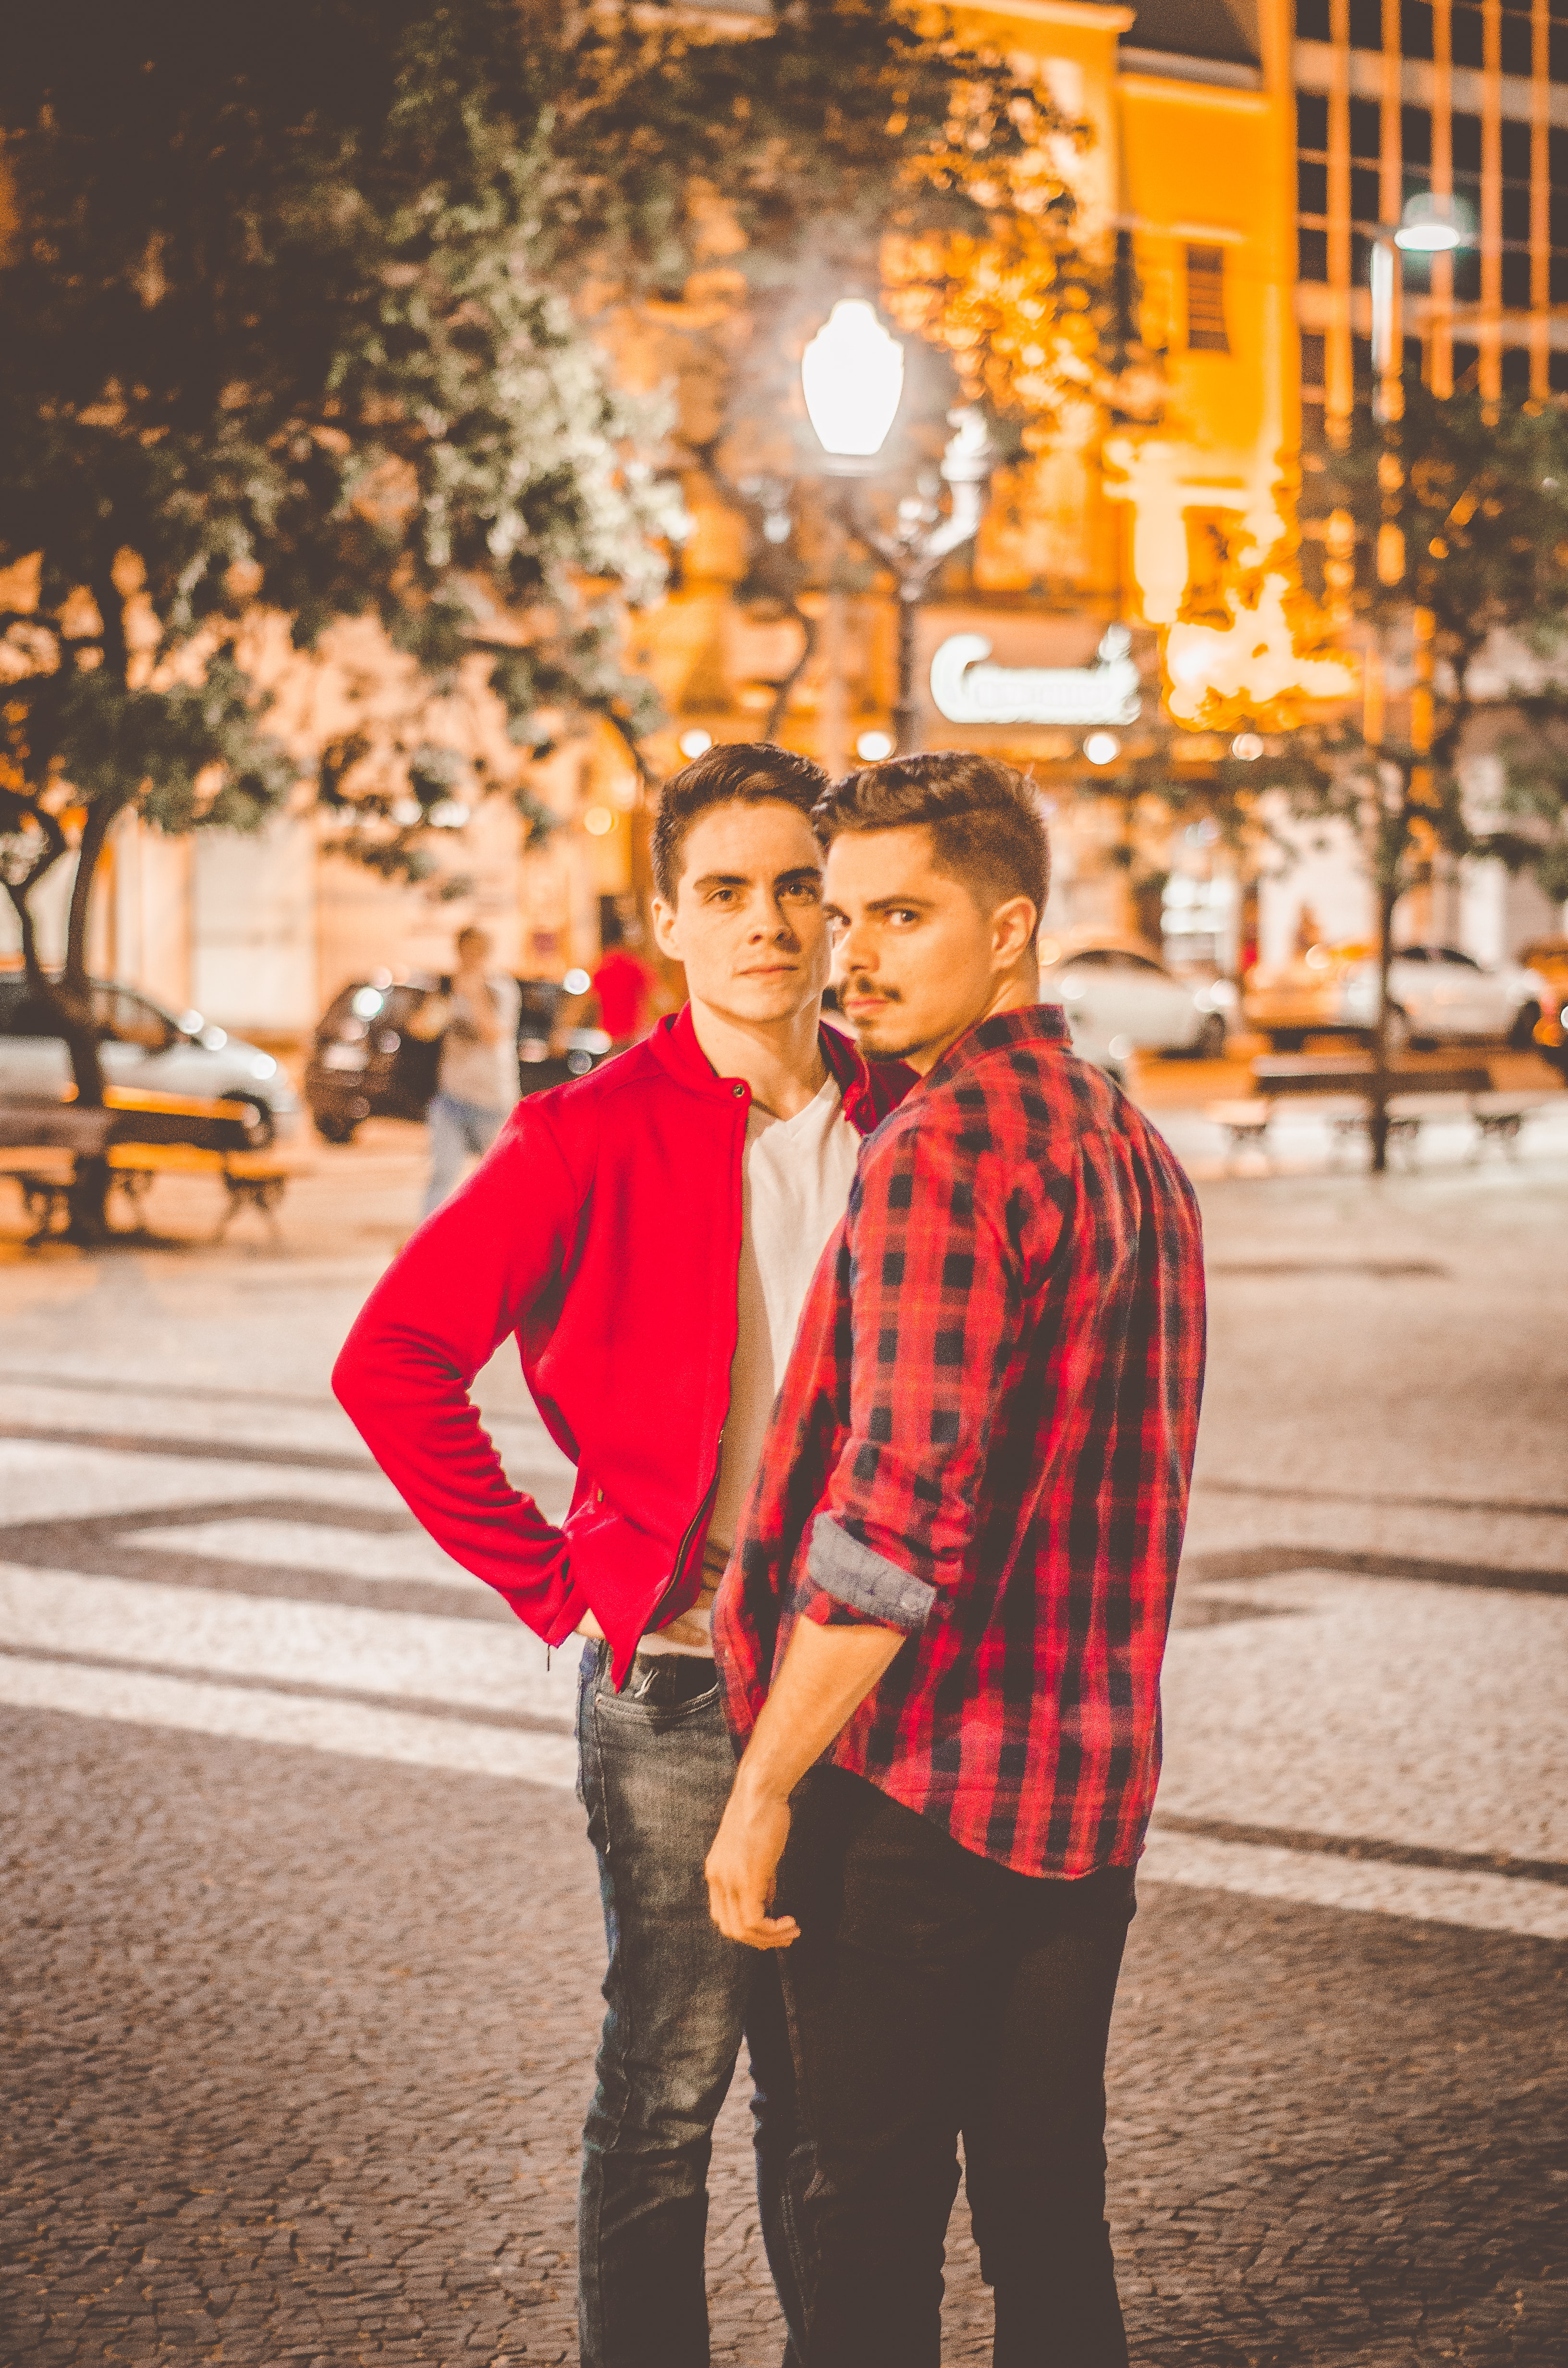 Two young men standing close together at night in a city square